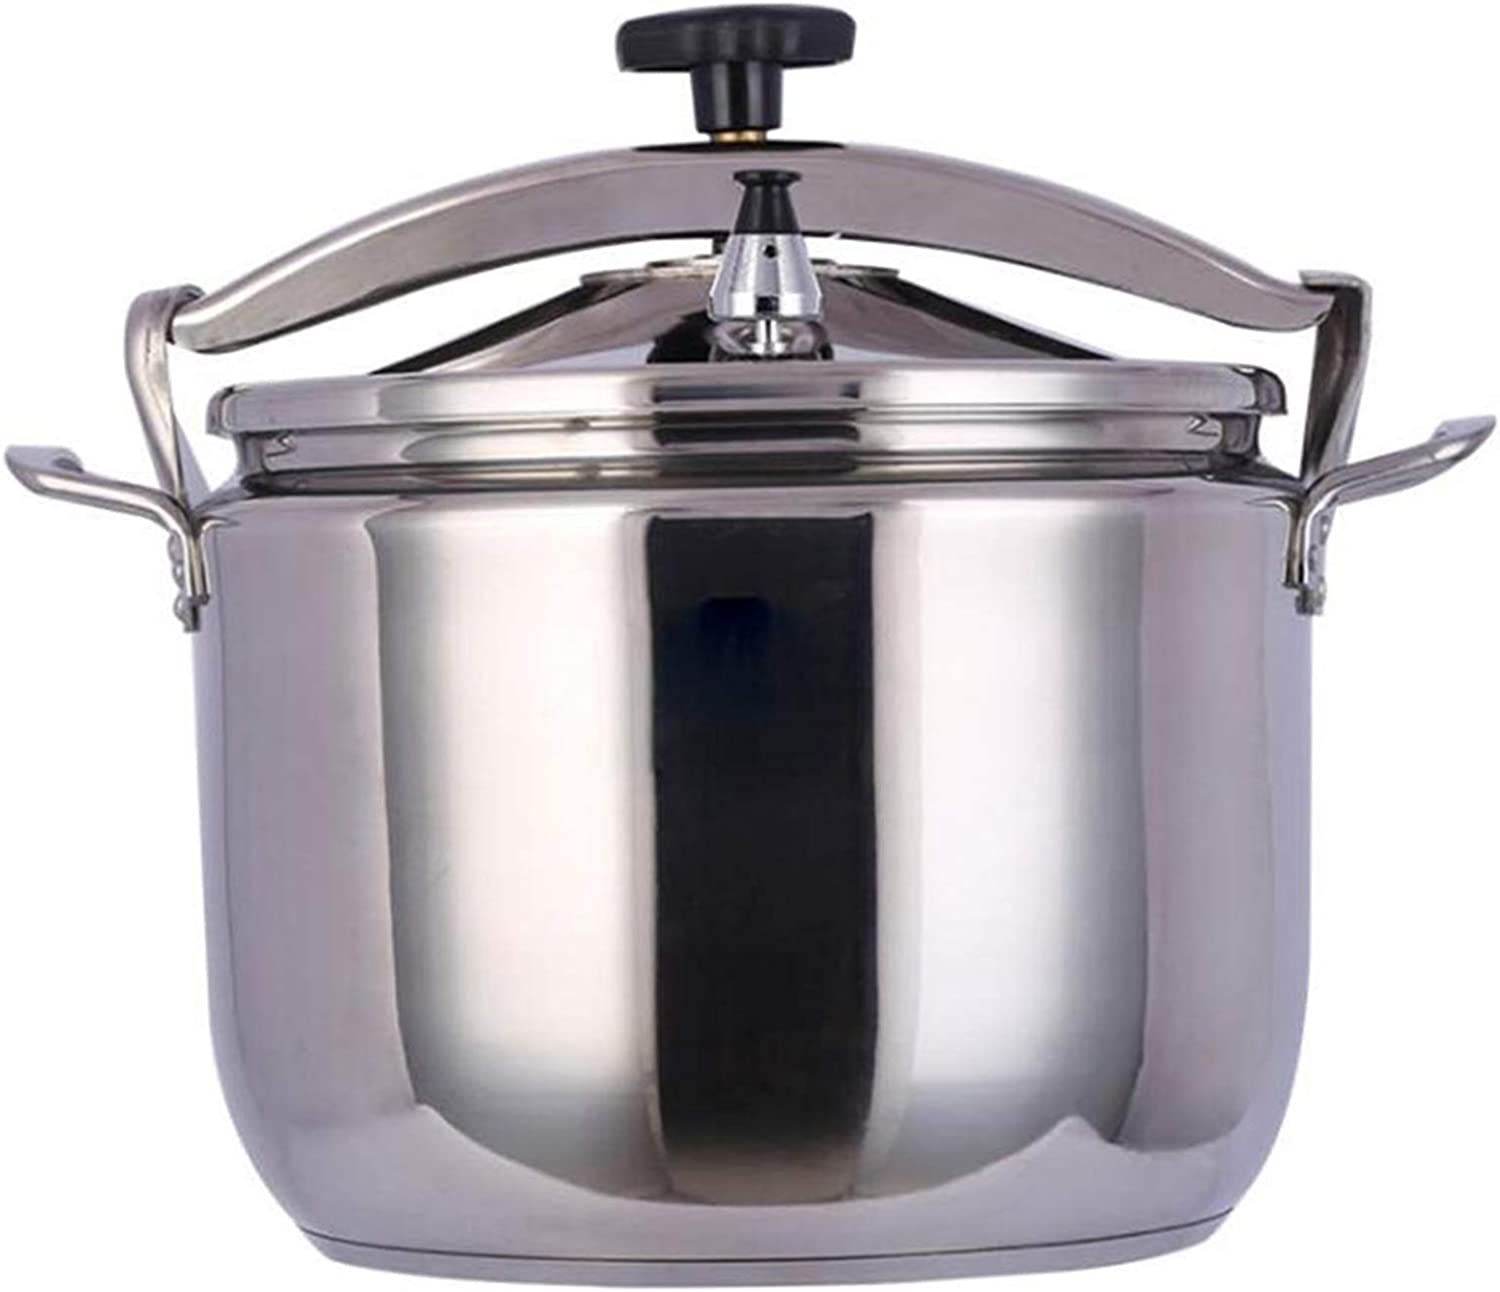 Commercial 304 stainless steel sealed large-capacity pressure cooker is suitable for induction cooker, open flame electric ceramic stove, hotel kitchen restaurant, etc. 15L-40L